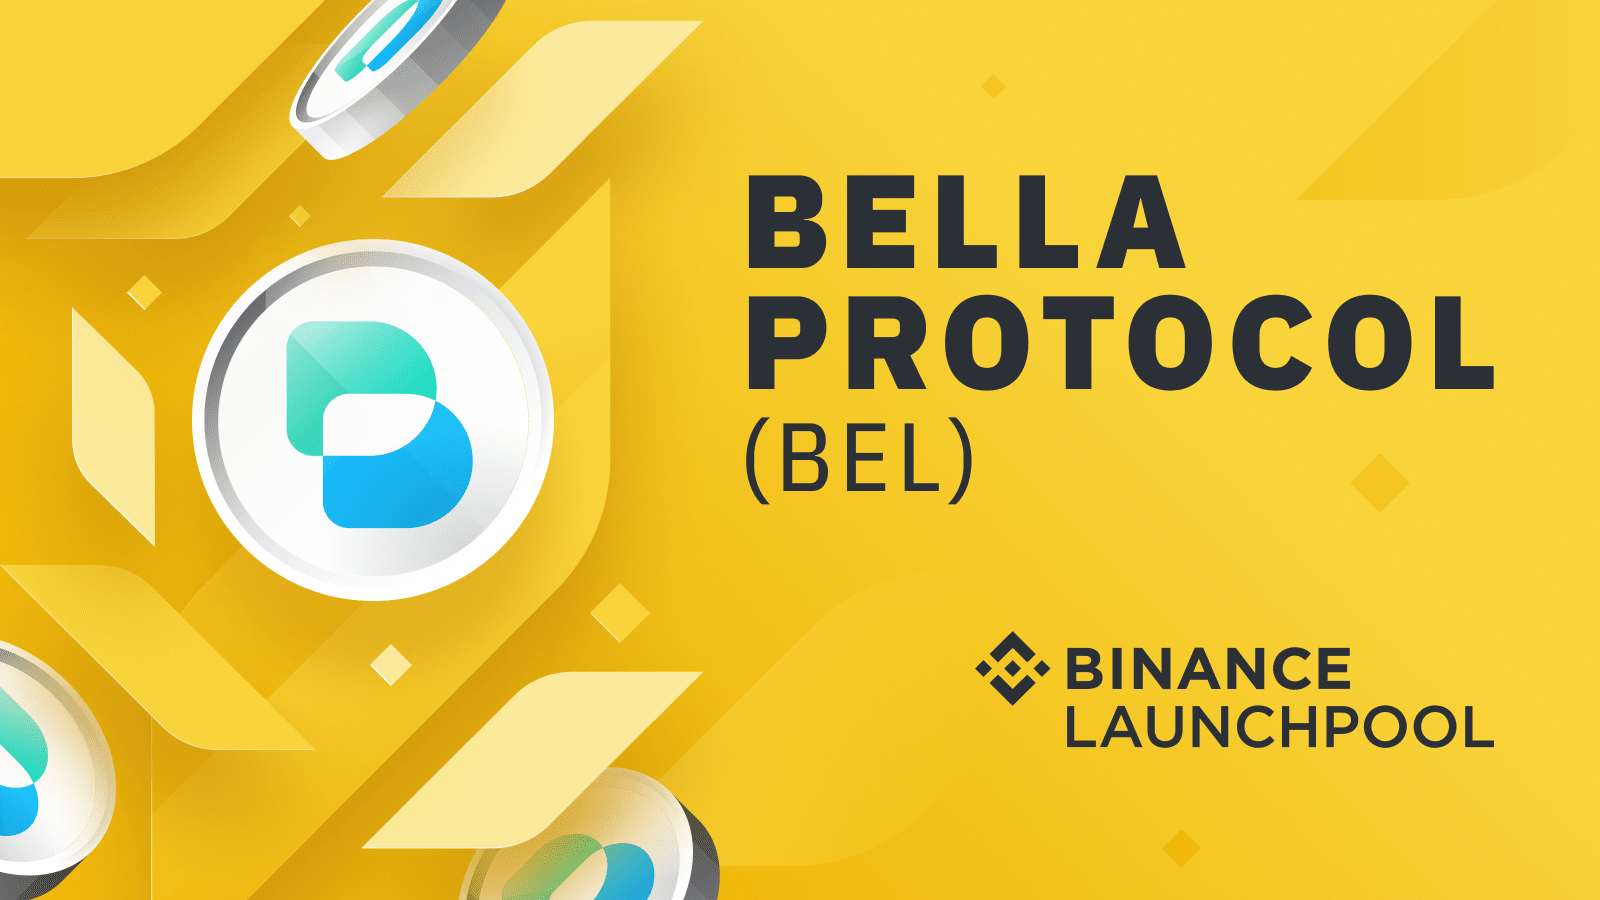 Bella Protocol - please activate images in your mail client